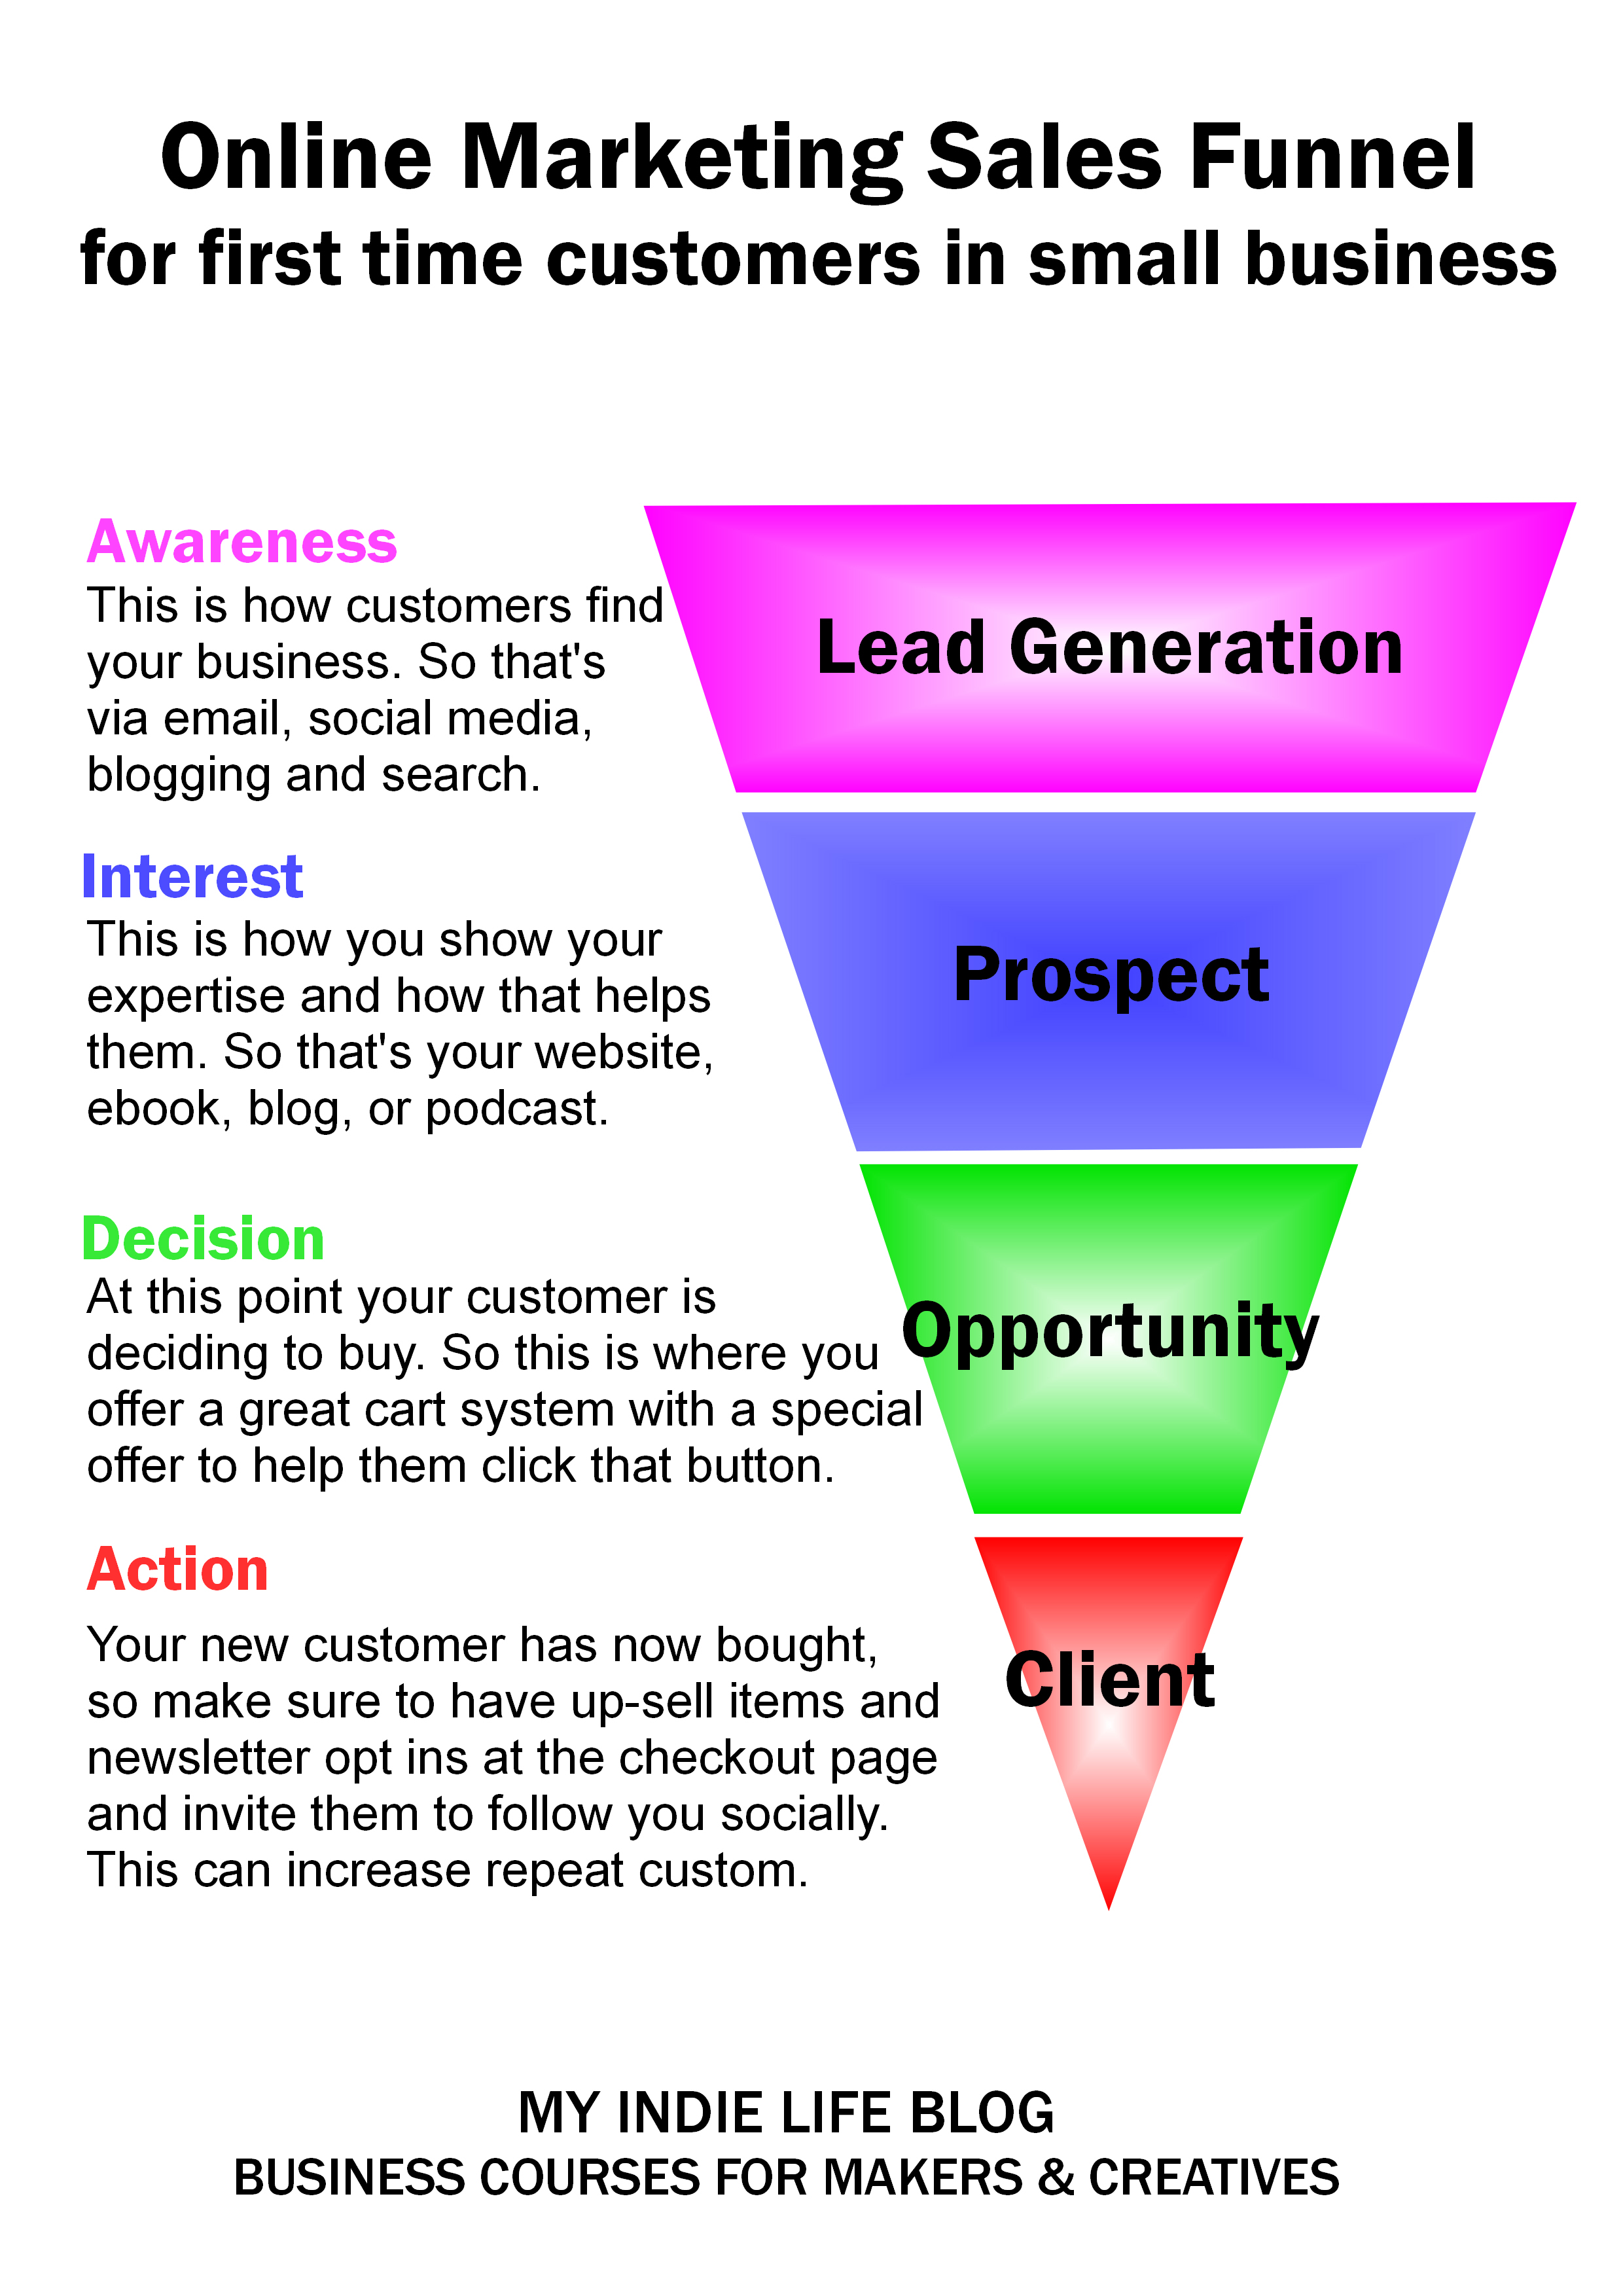 online marketing funnel infographic